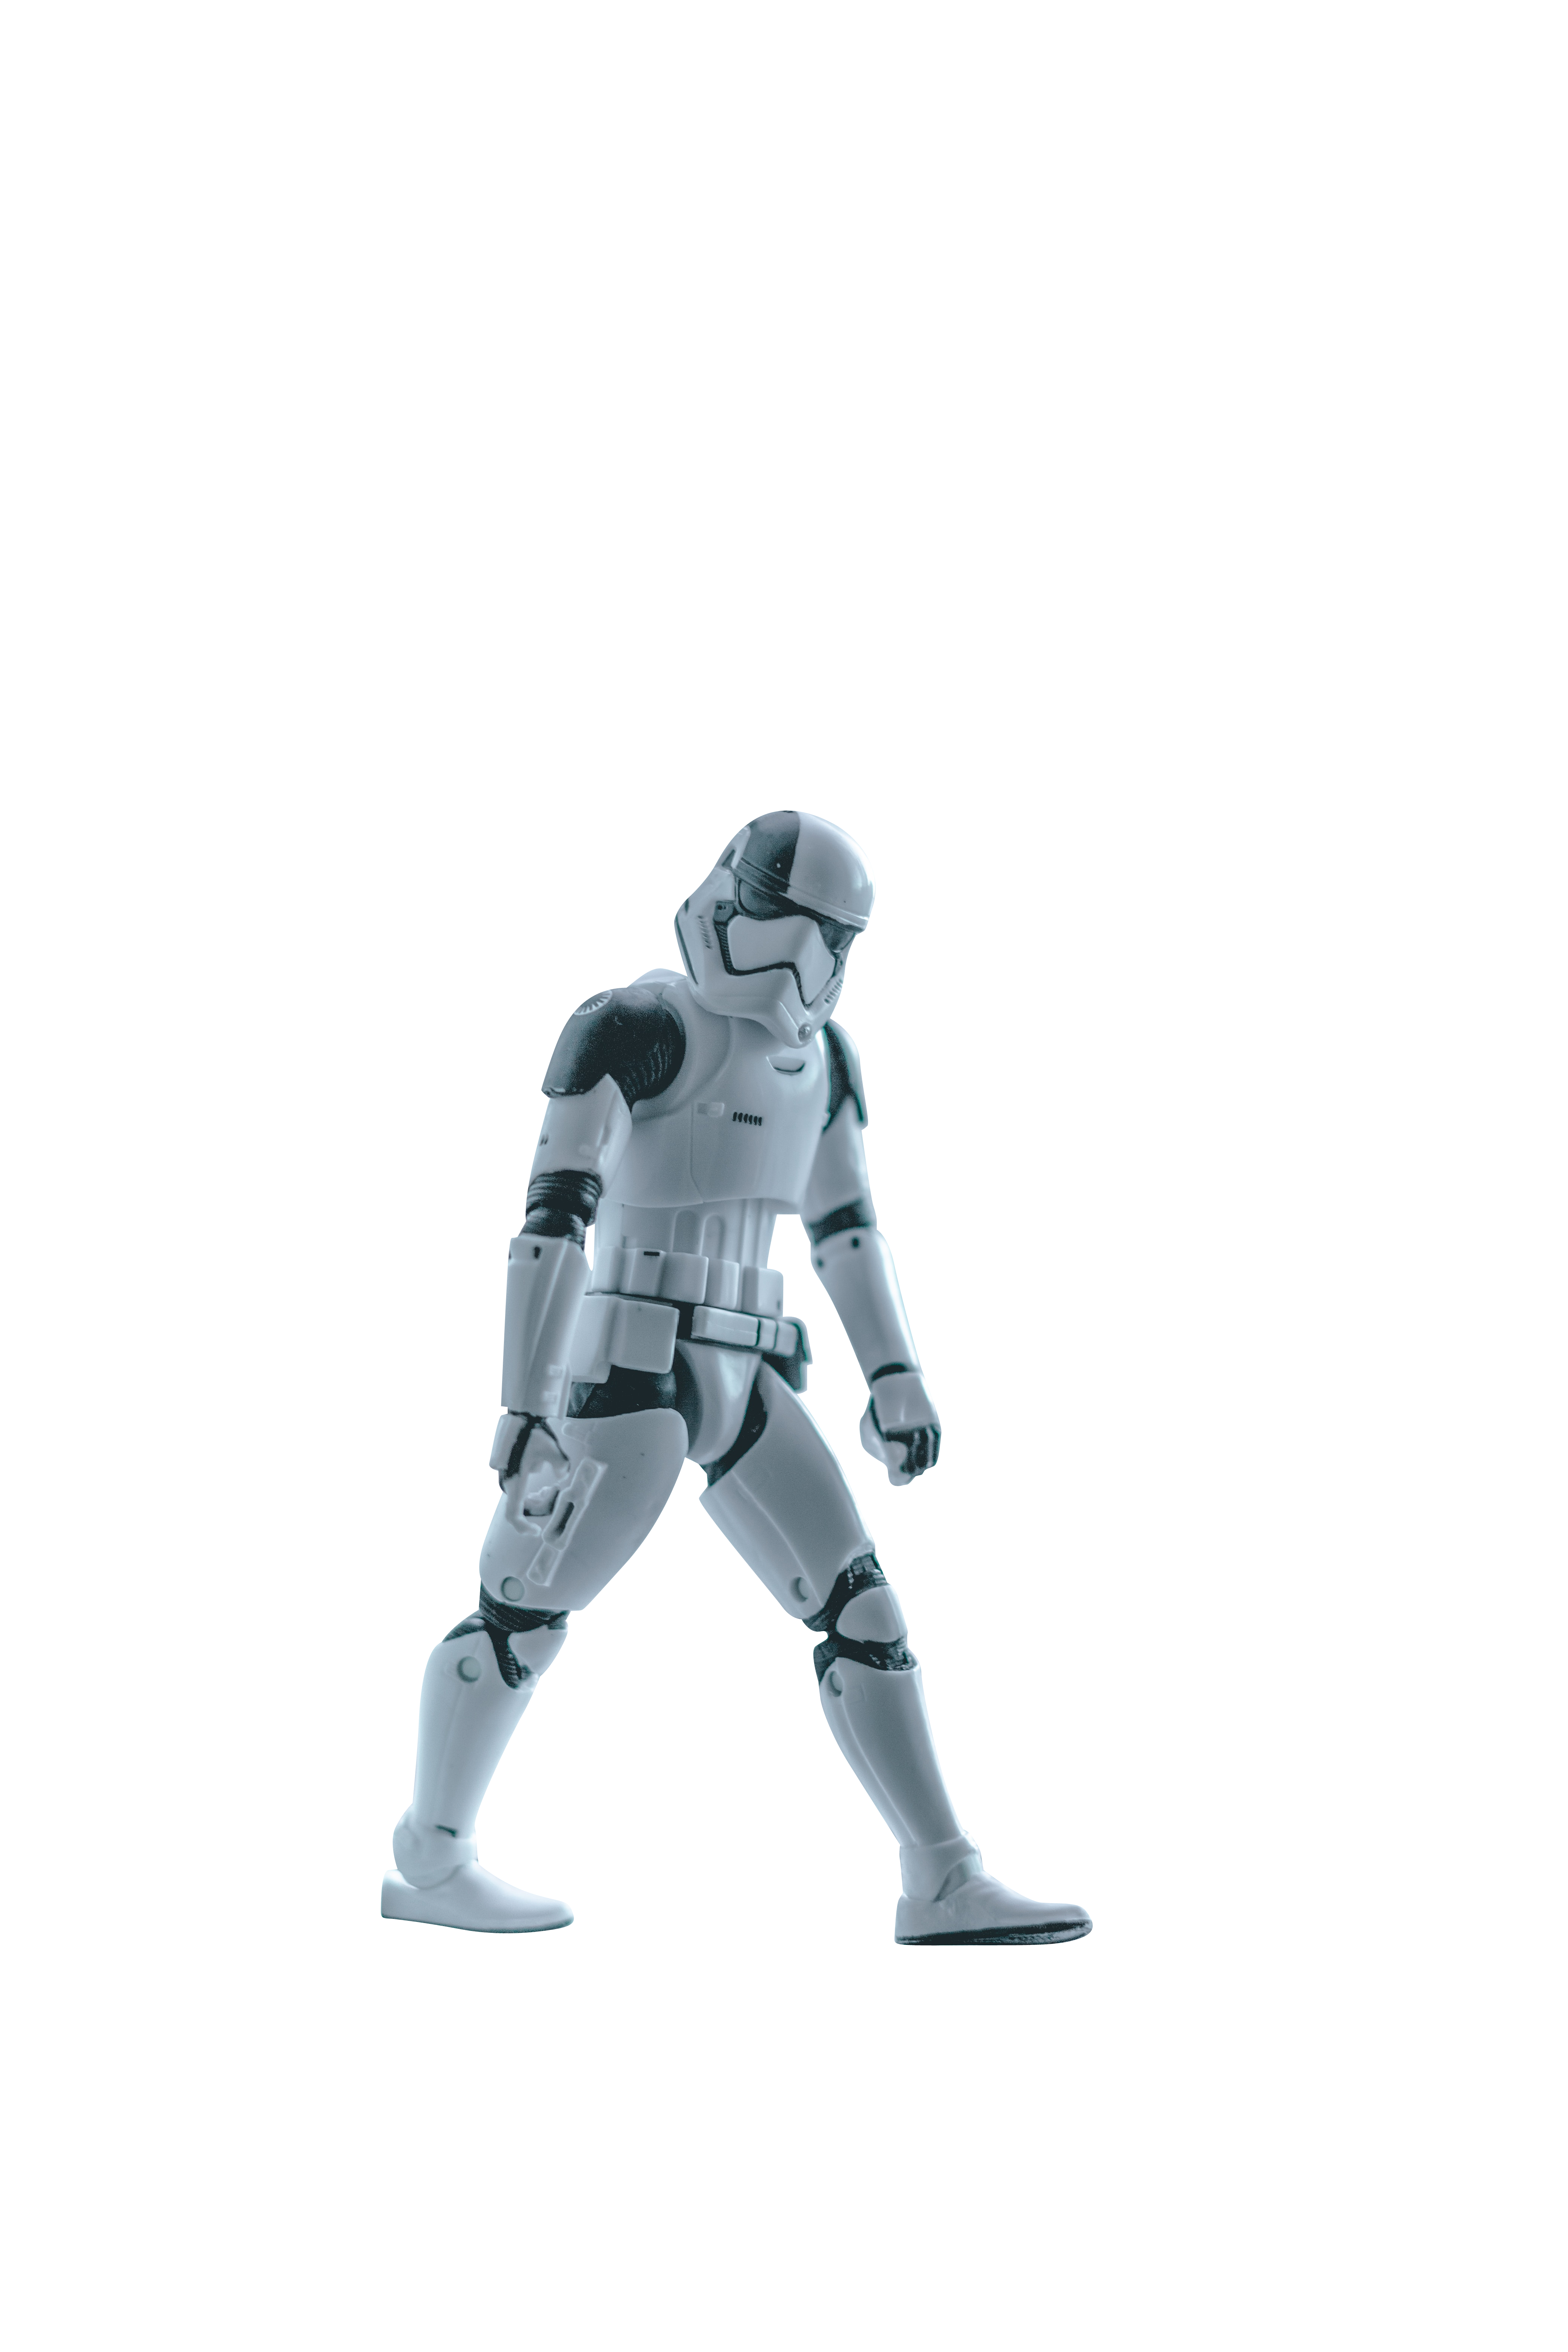 Storm Trooper walking forward Transparent Background PNG